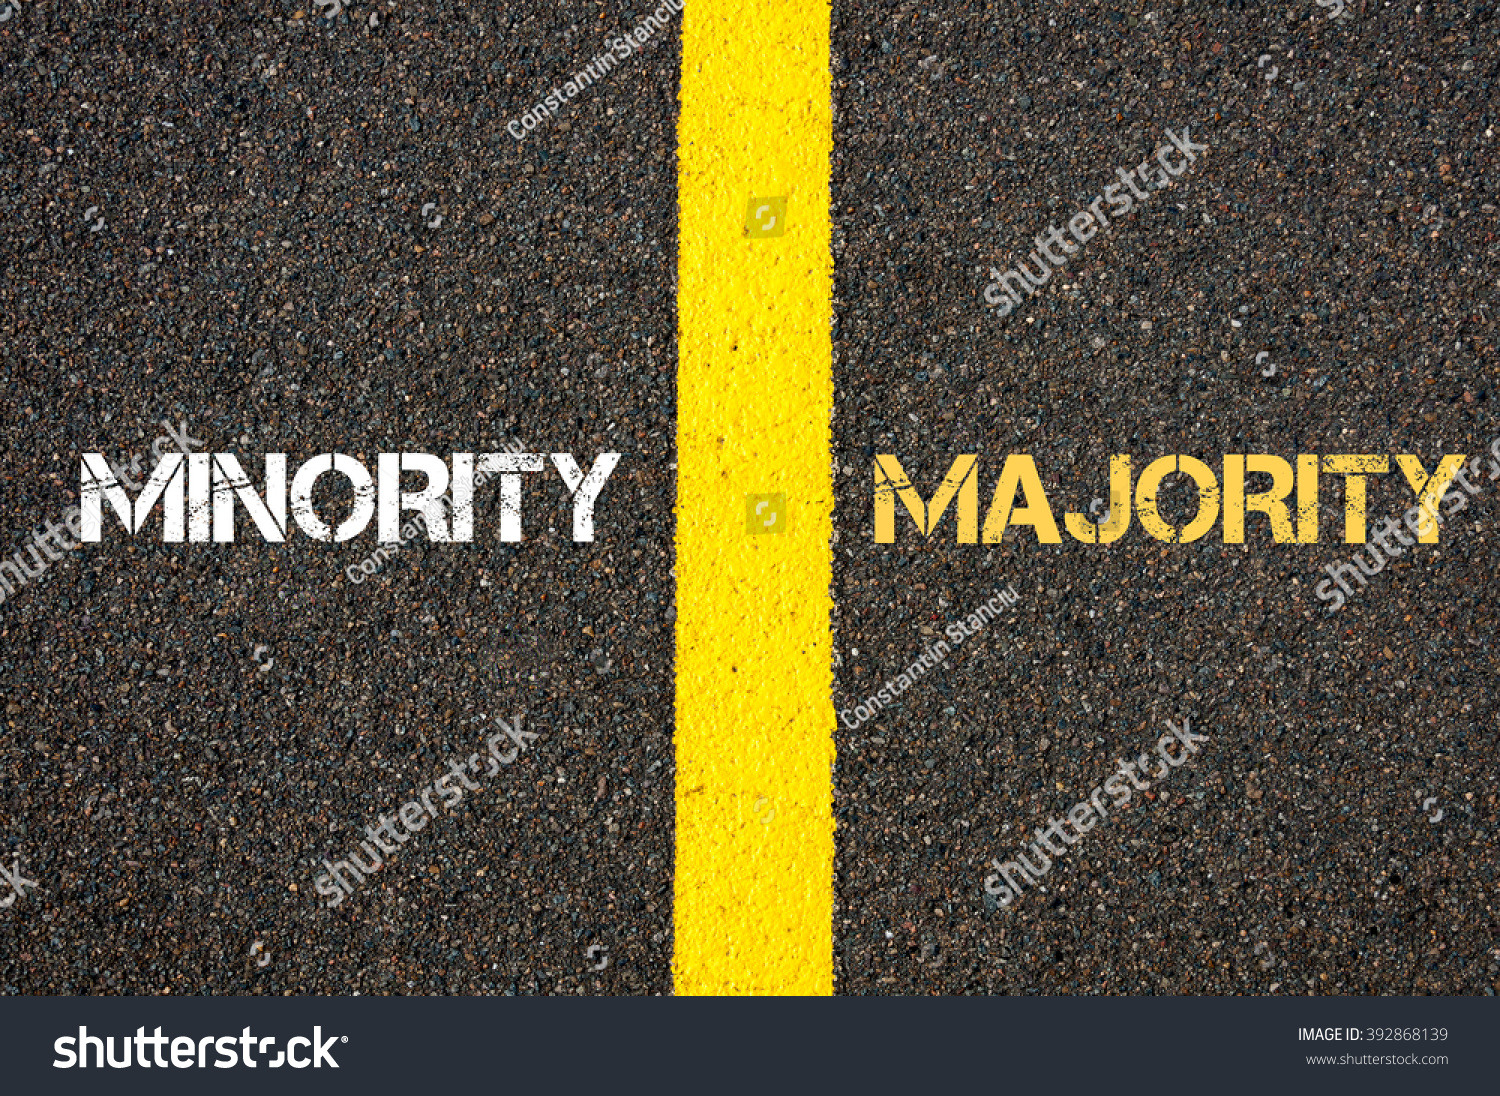 majority vs minorities The majority vote (or sometimes a plurality when there are more than two  made  and that minorities could not prevent the majority from deciding an issue or an.